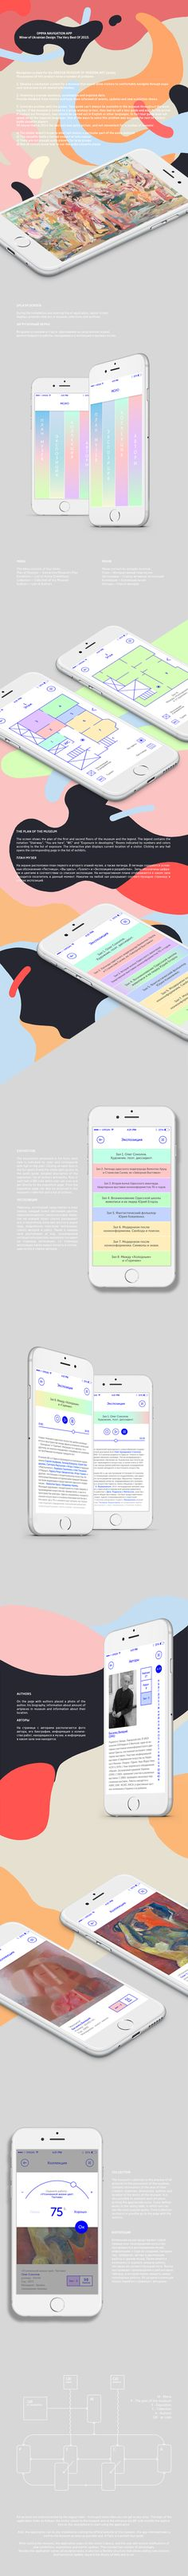 Winer of Ukrainian Design: The Very Best Of 2015.Navigation system for the ODESSA MUSEUM OF MODERN ART (guide)The purpose of this product solve a number of problems. 1. Develop a navigation system for a museum that would allow visitors to comfortabl…